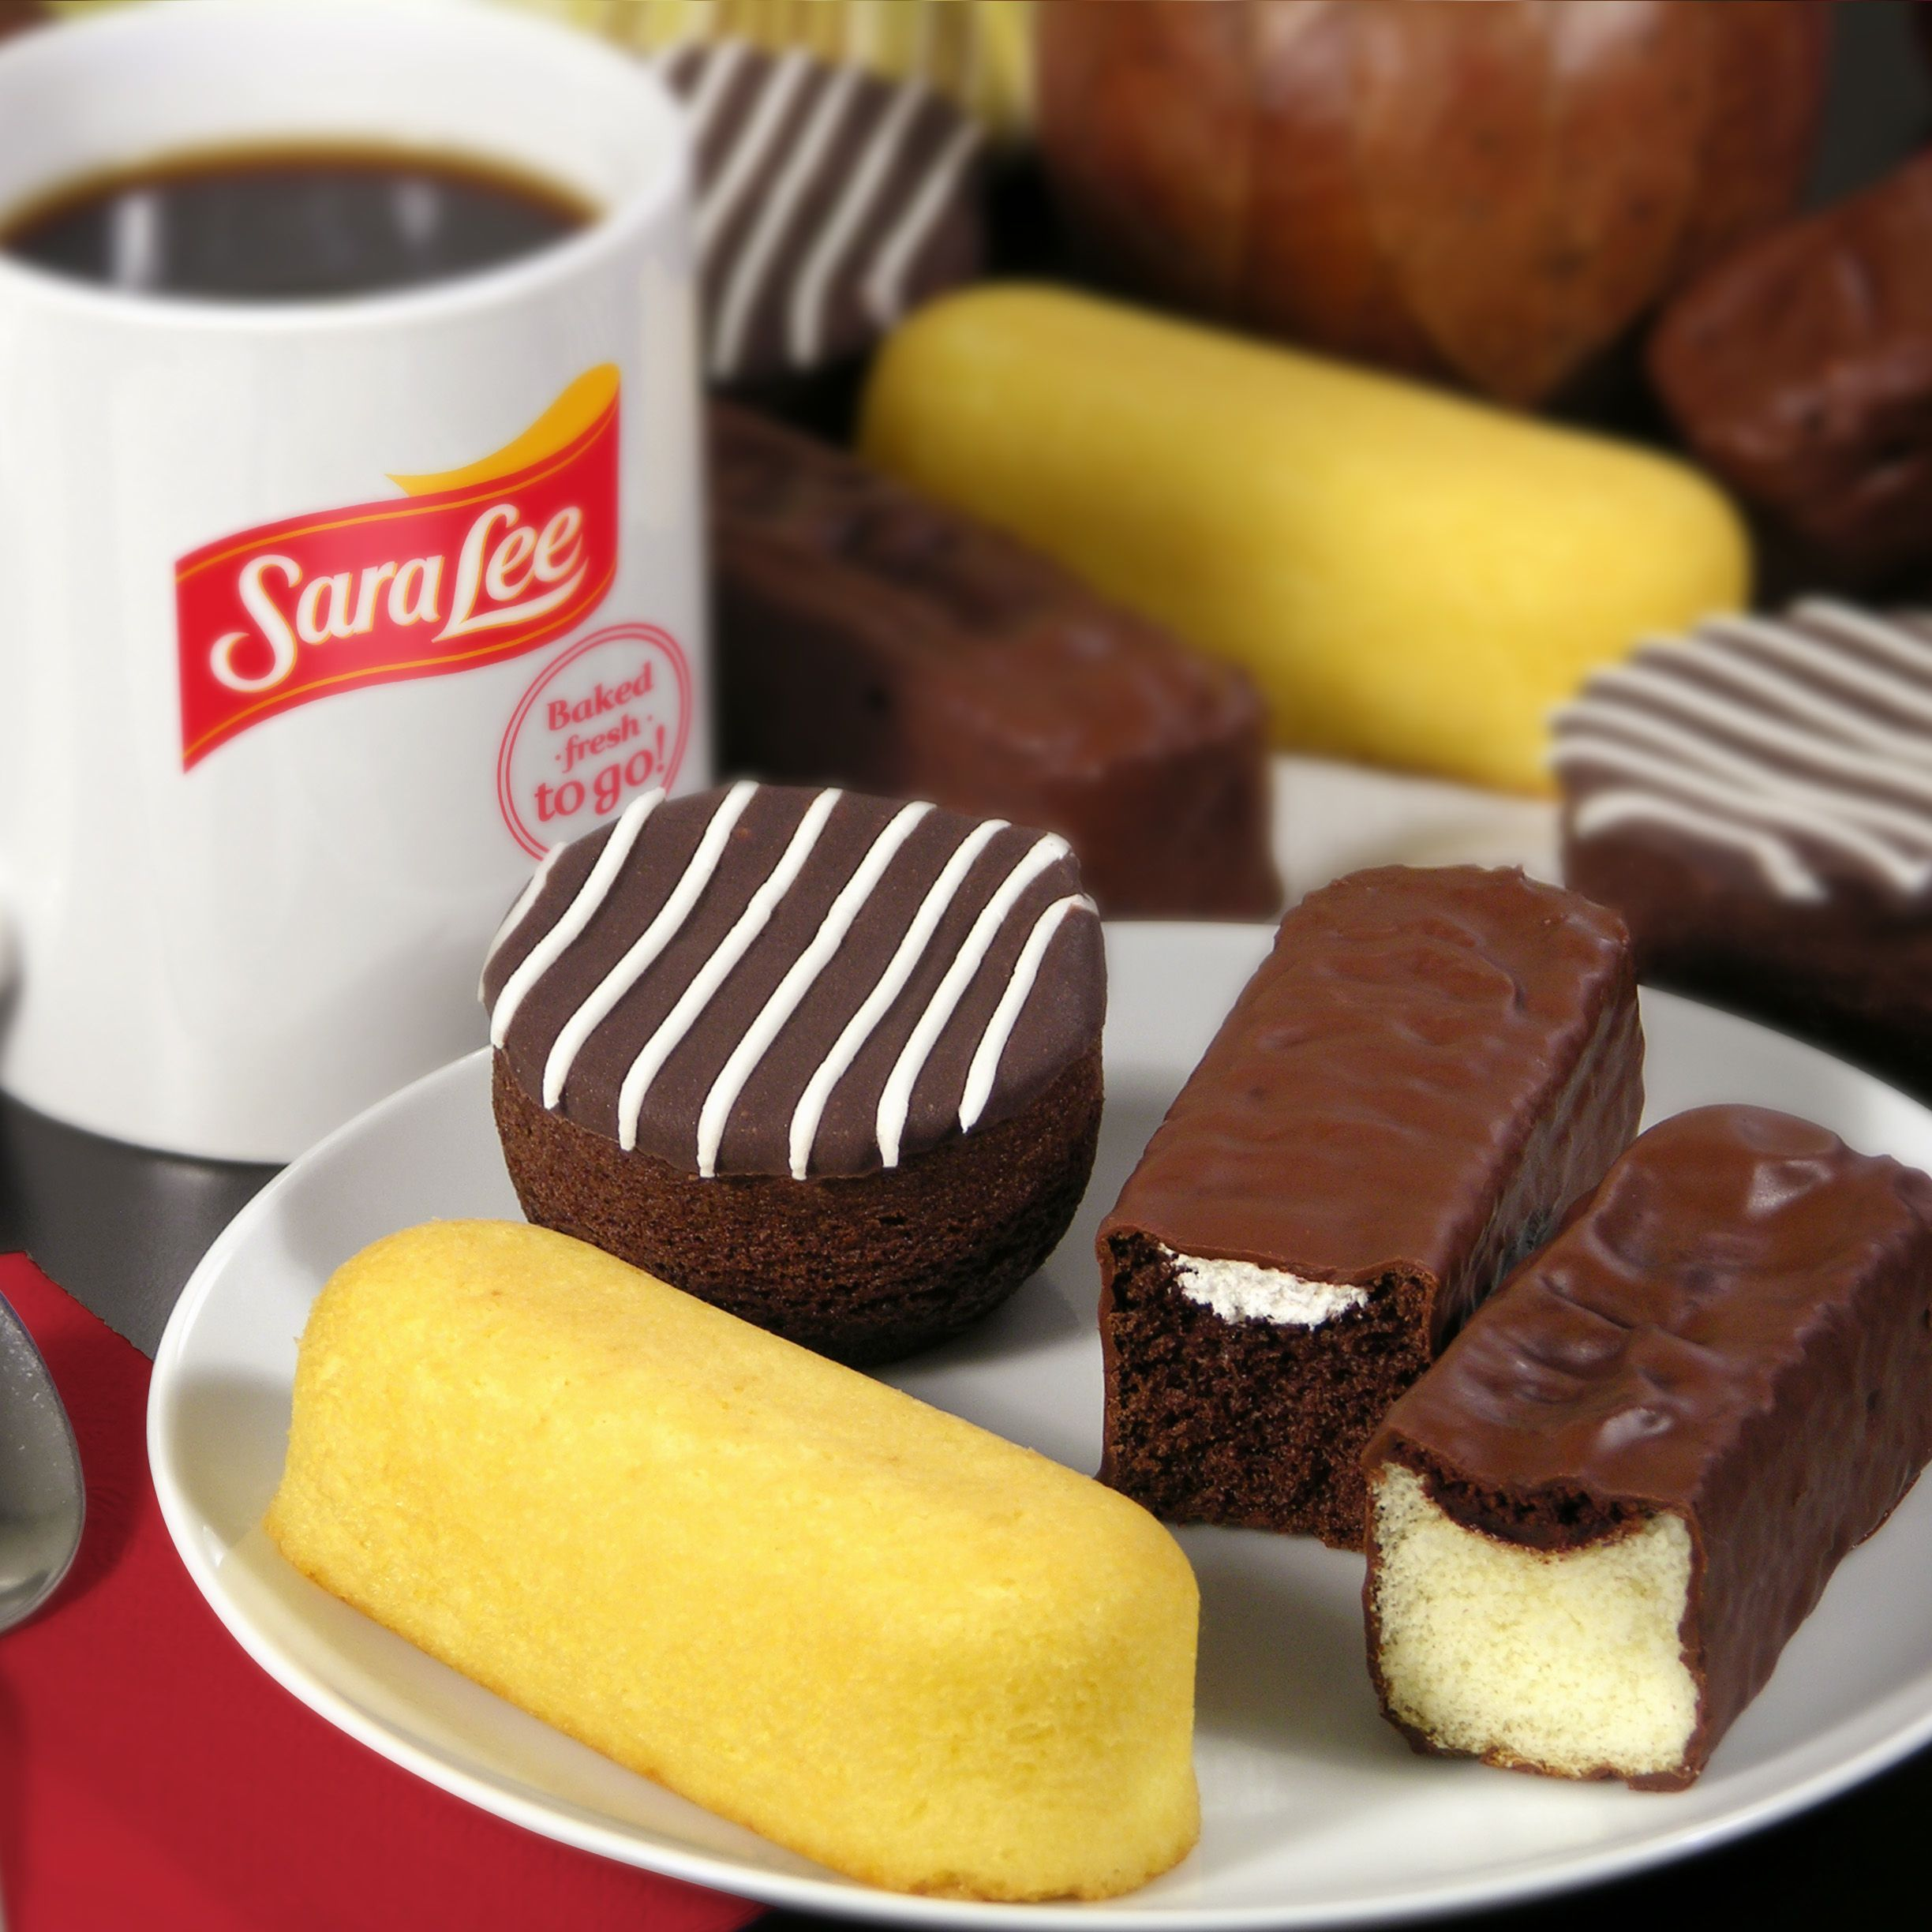 "<p><span style=""font-size: 12pt&#x3B; font-family: 'Times New Roman'&#x3B;"">Sara Lee has teamed up with <em>Bimbo</em> Bakeries USA to create their new snacks filled with cream and chocolate. It's like a little taste of Mexico in your mouth imagine a <em>Gansito</em> met a Twinkie but without the jelly. They also have a variety of other options perfect for a little sugar fix. </span></p>"